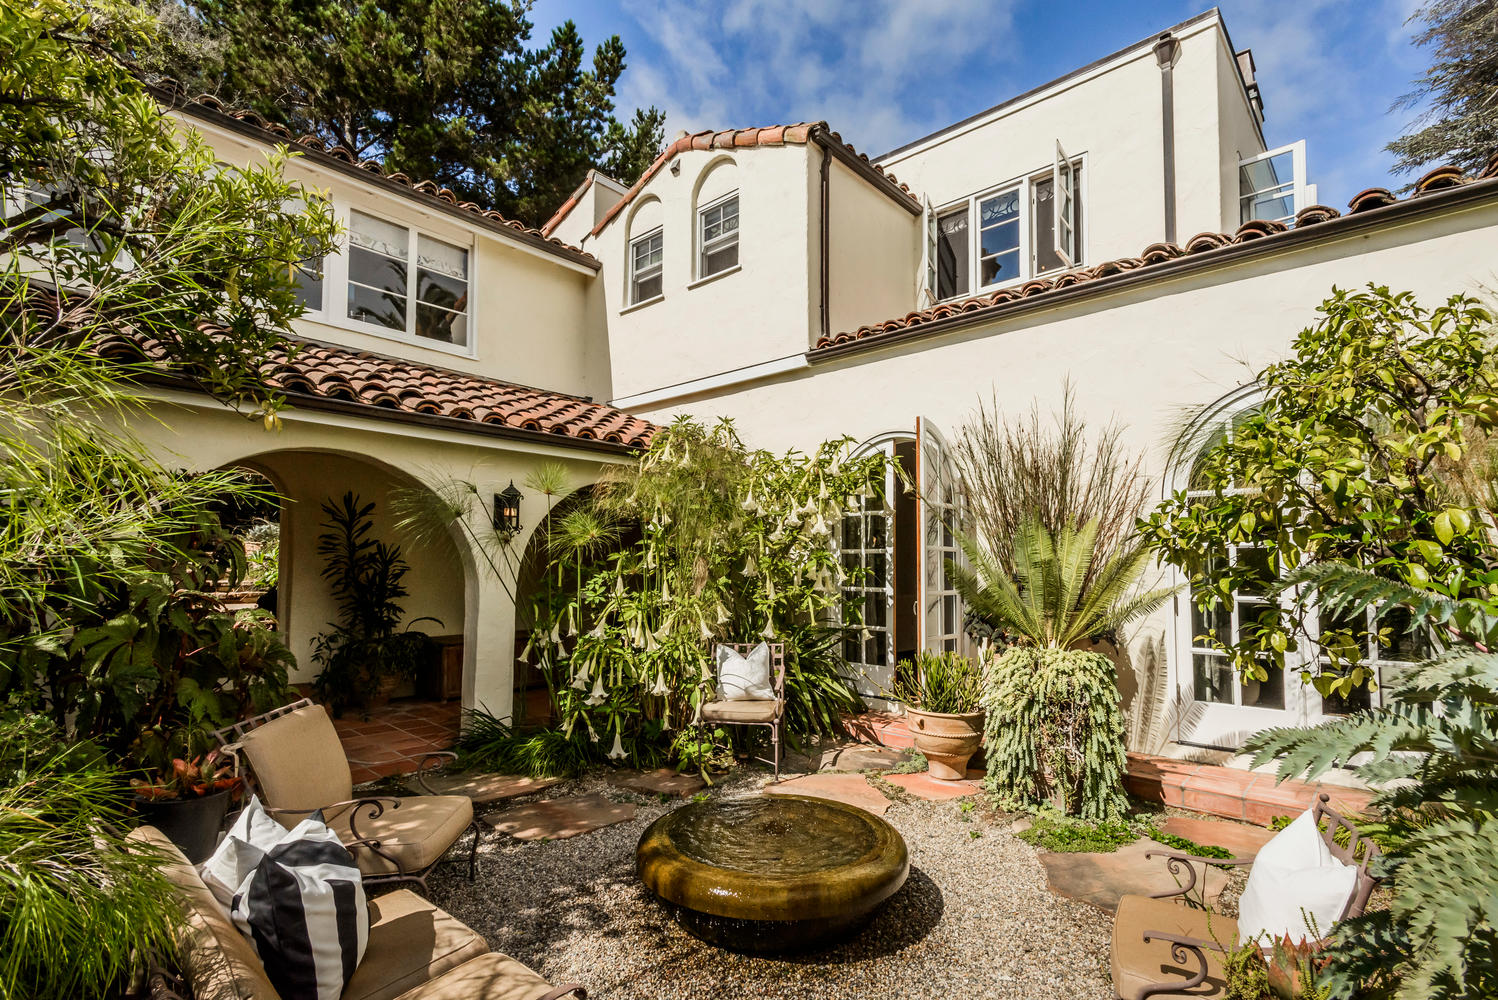 San francisco homes neighborhoods architecture and real for Spanish style homes for sale near me